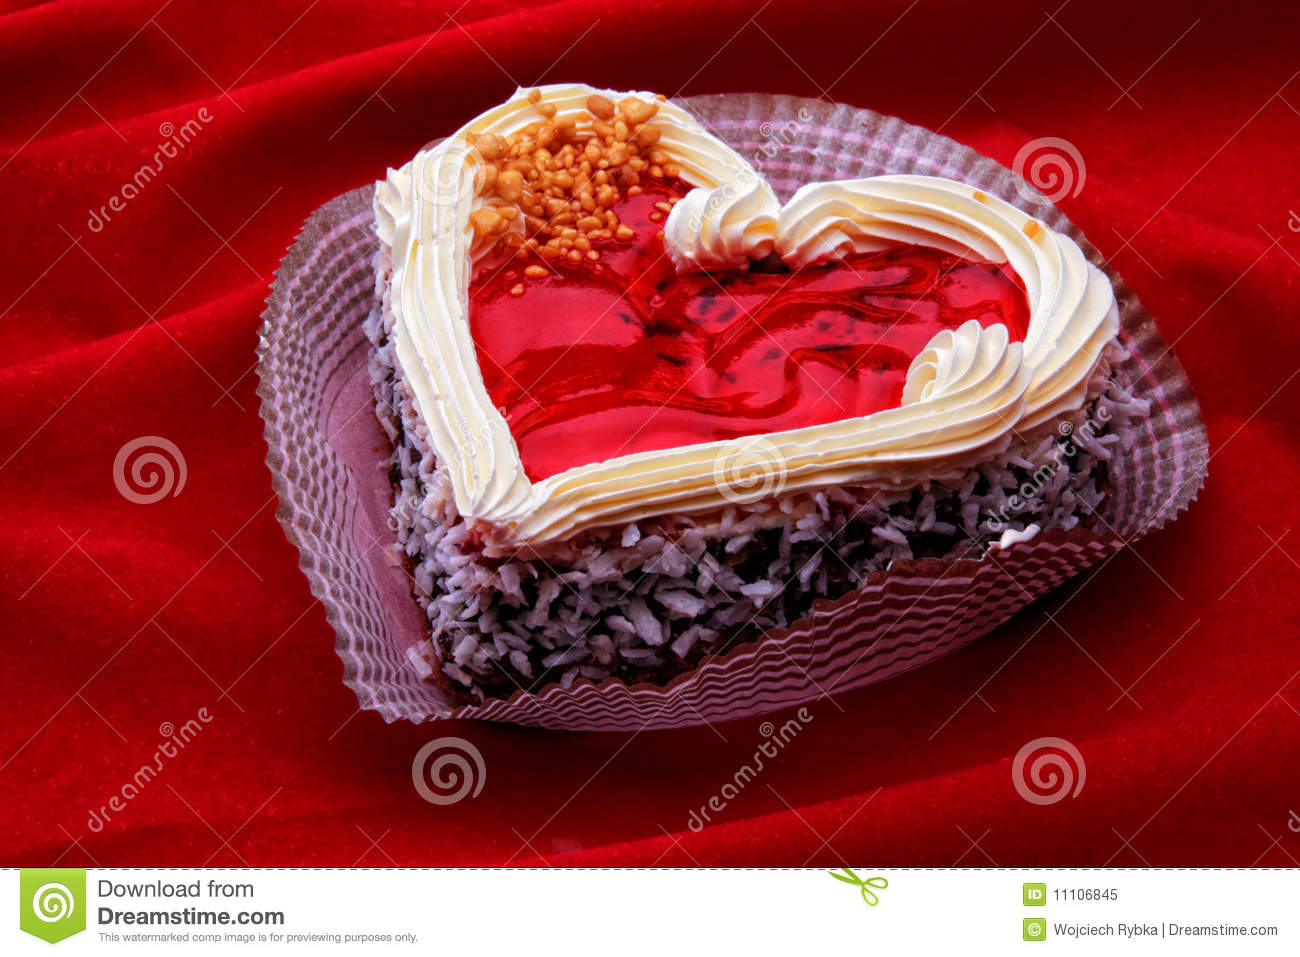 Heart Shaped Red Cake Images : Heart-shaped Cake On The Red Velvet Royalty Free Stock ...